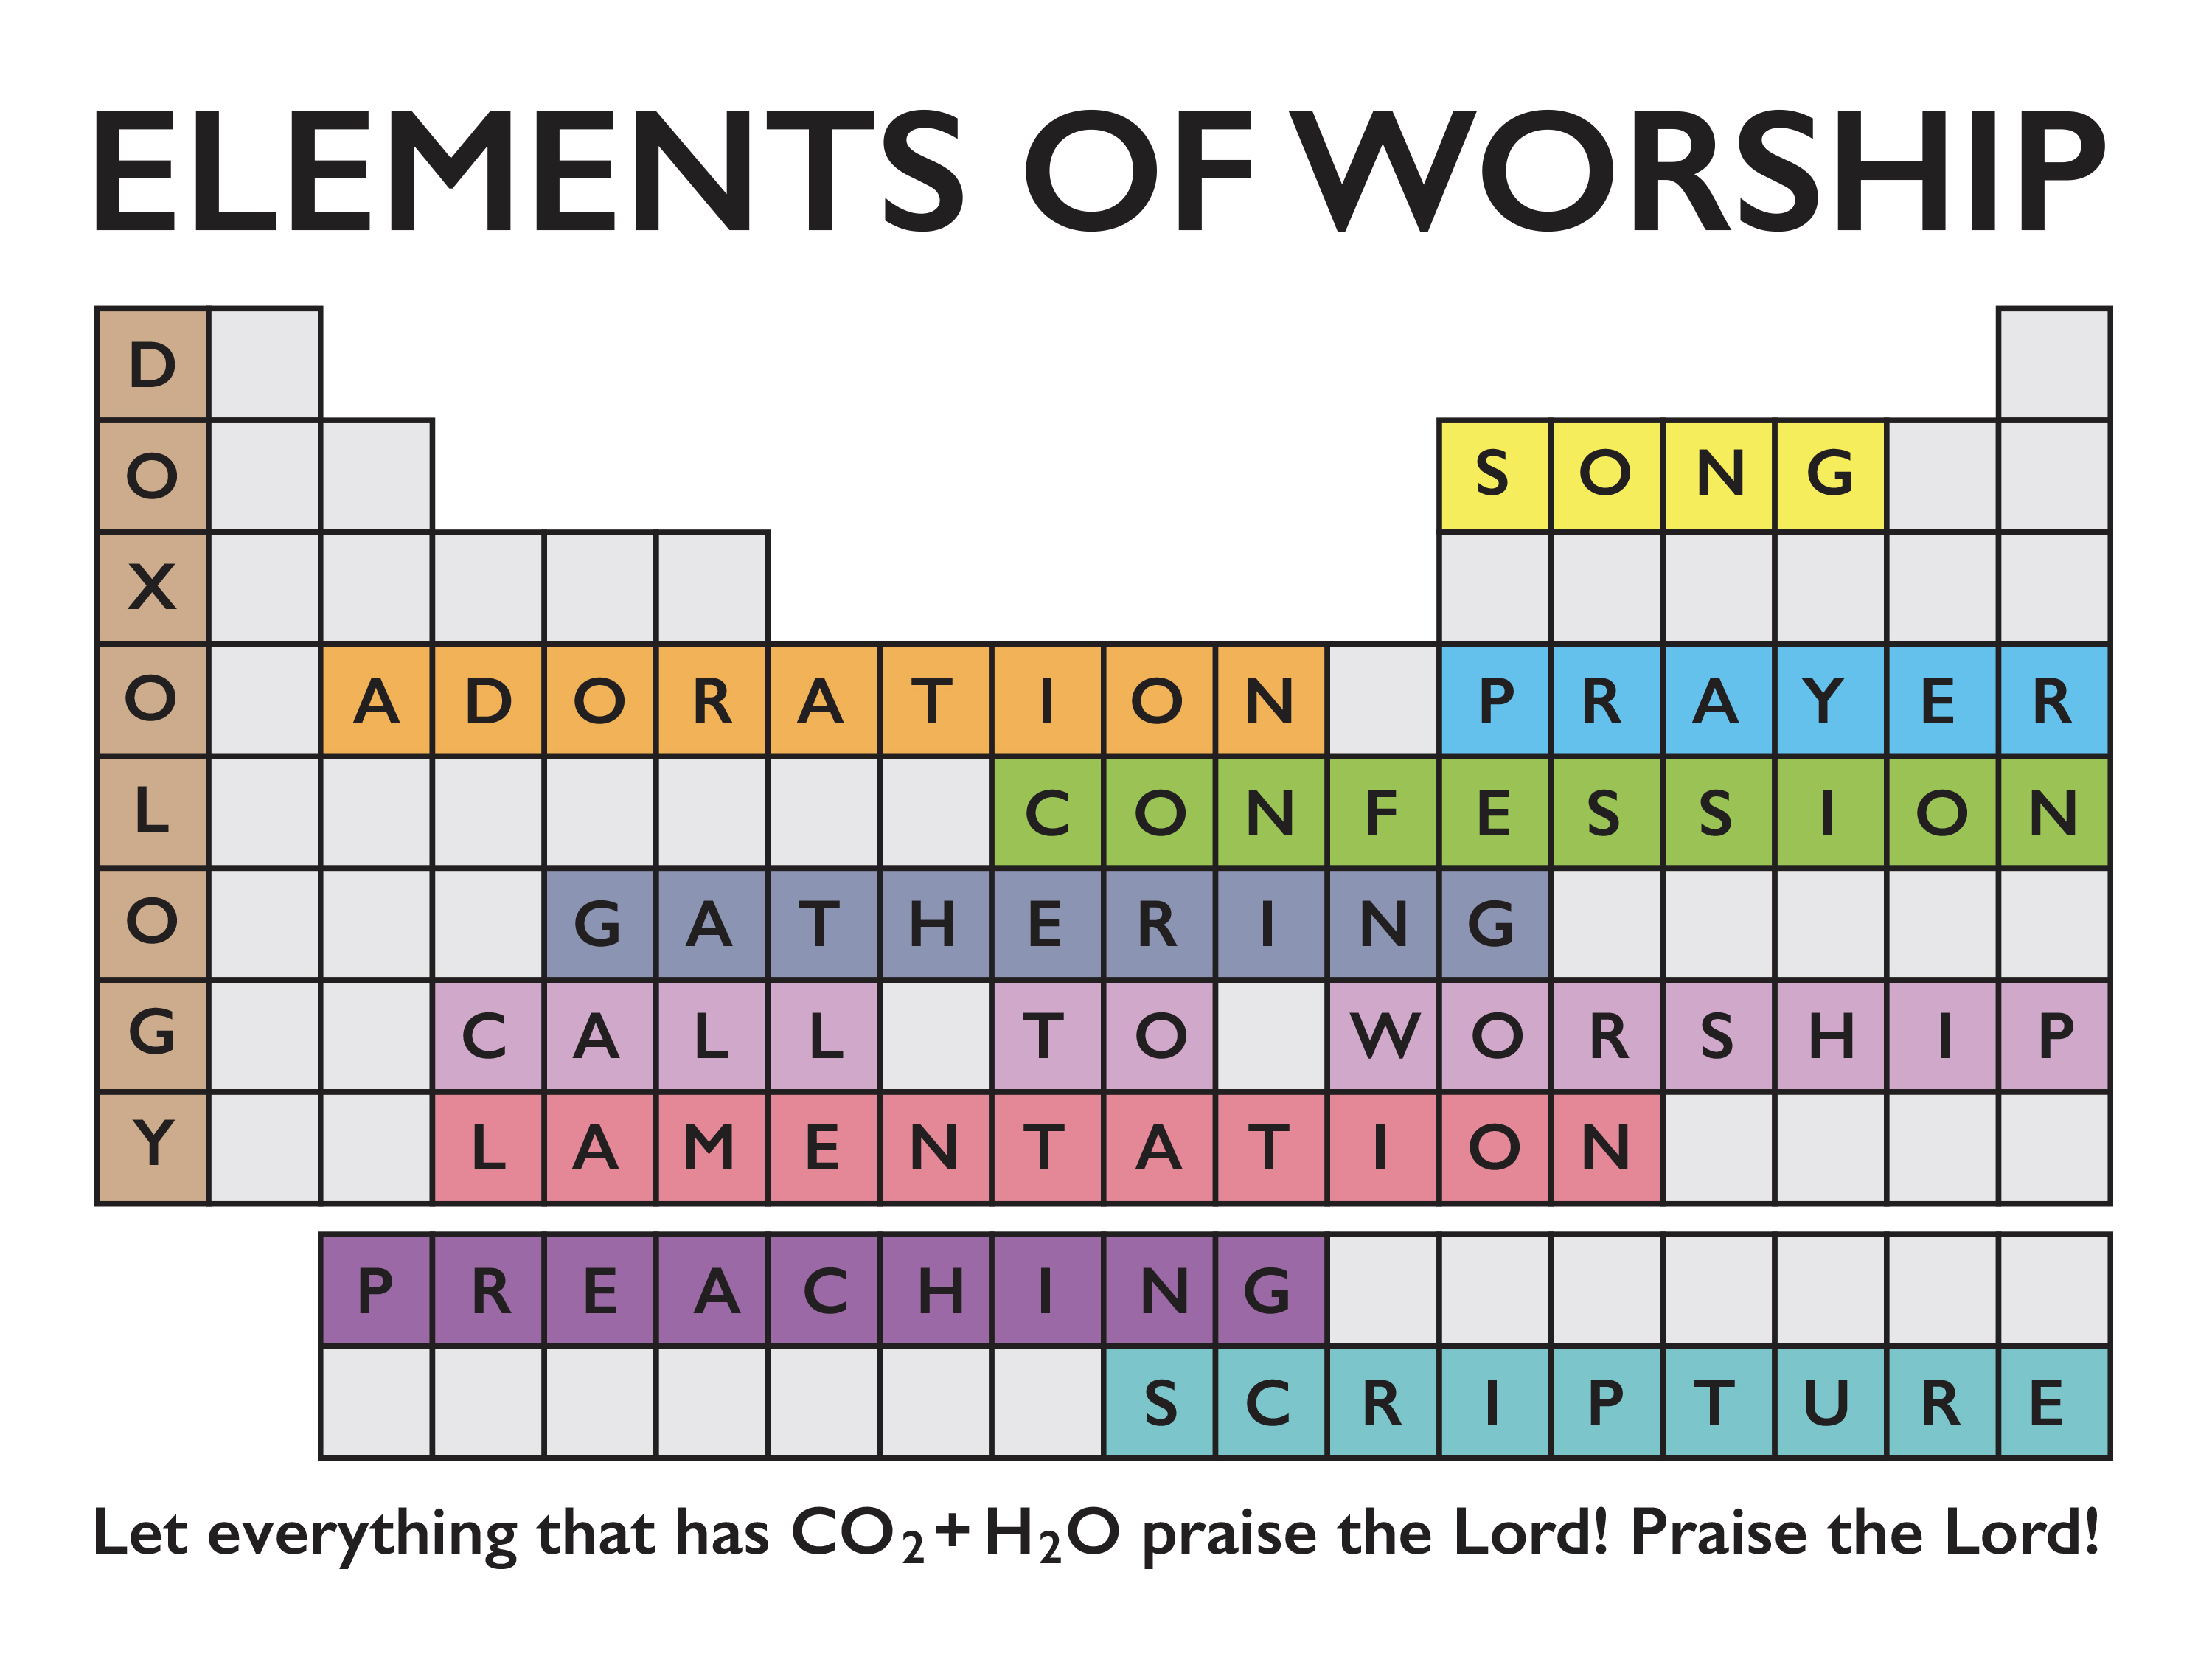 Elements of Worship banner